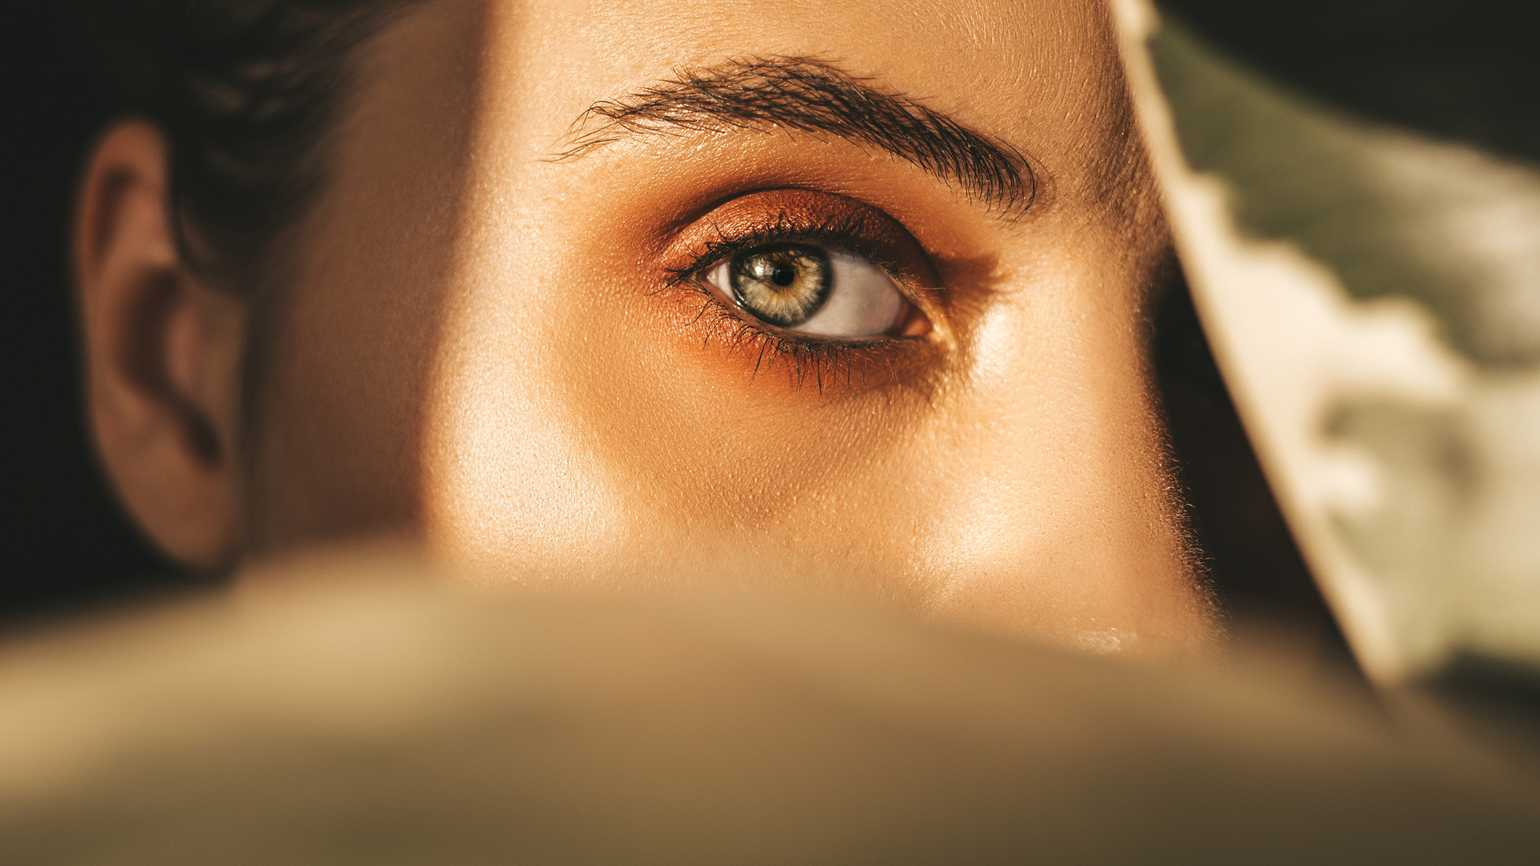 Close up of a woman's eye.